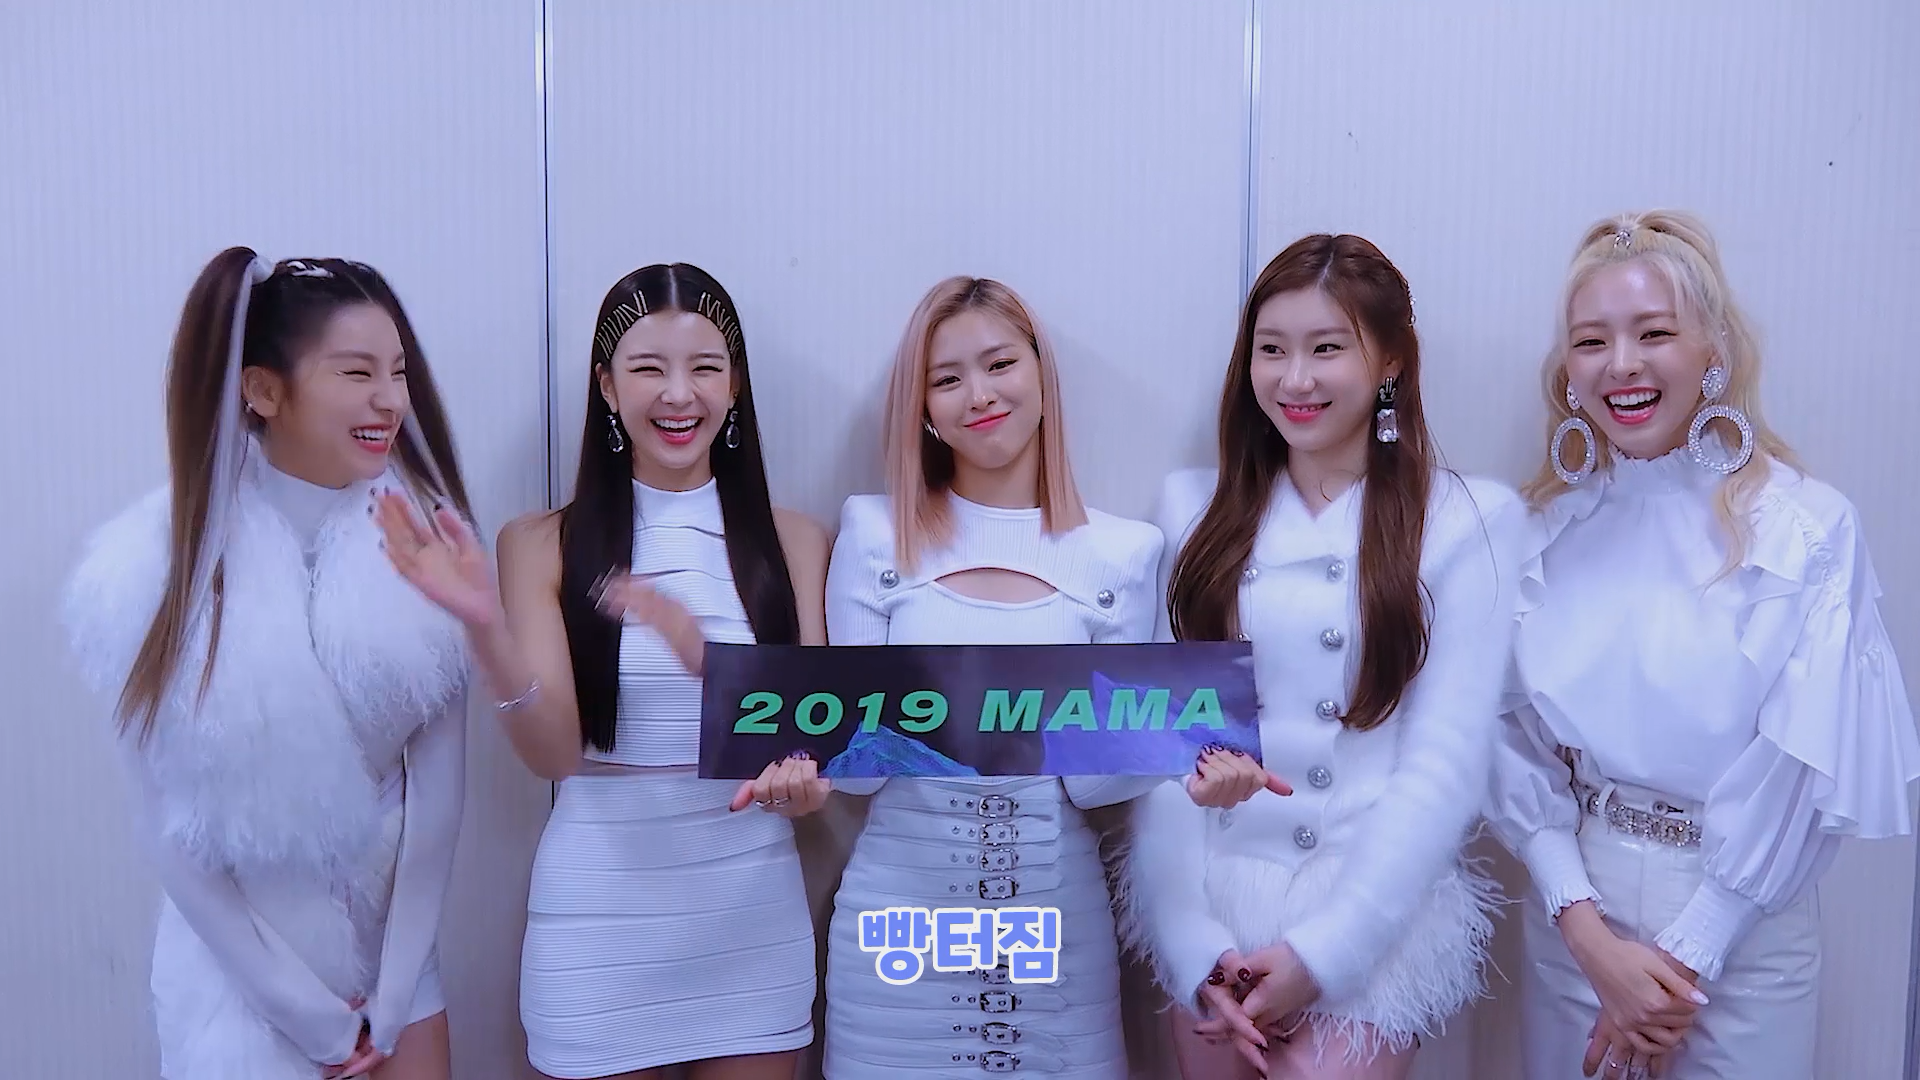 [ITZY? ITZY!(있지?있지!)] EP40. MAMA에 있지!